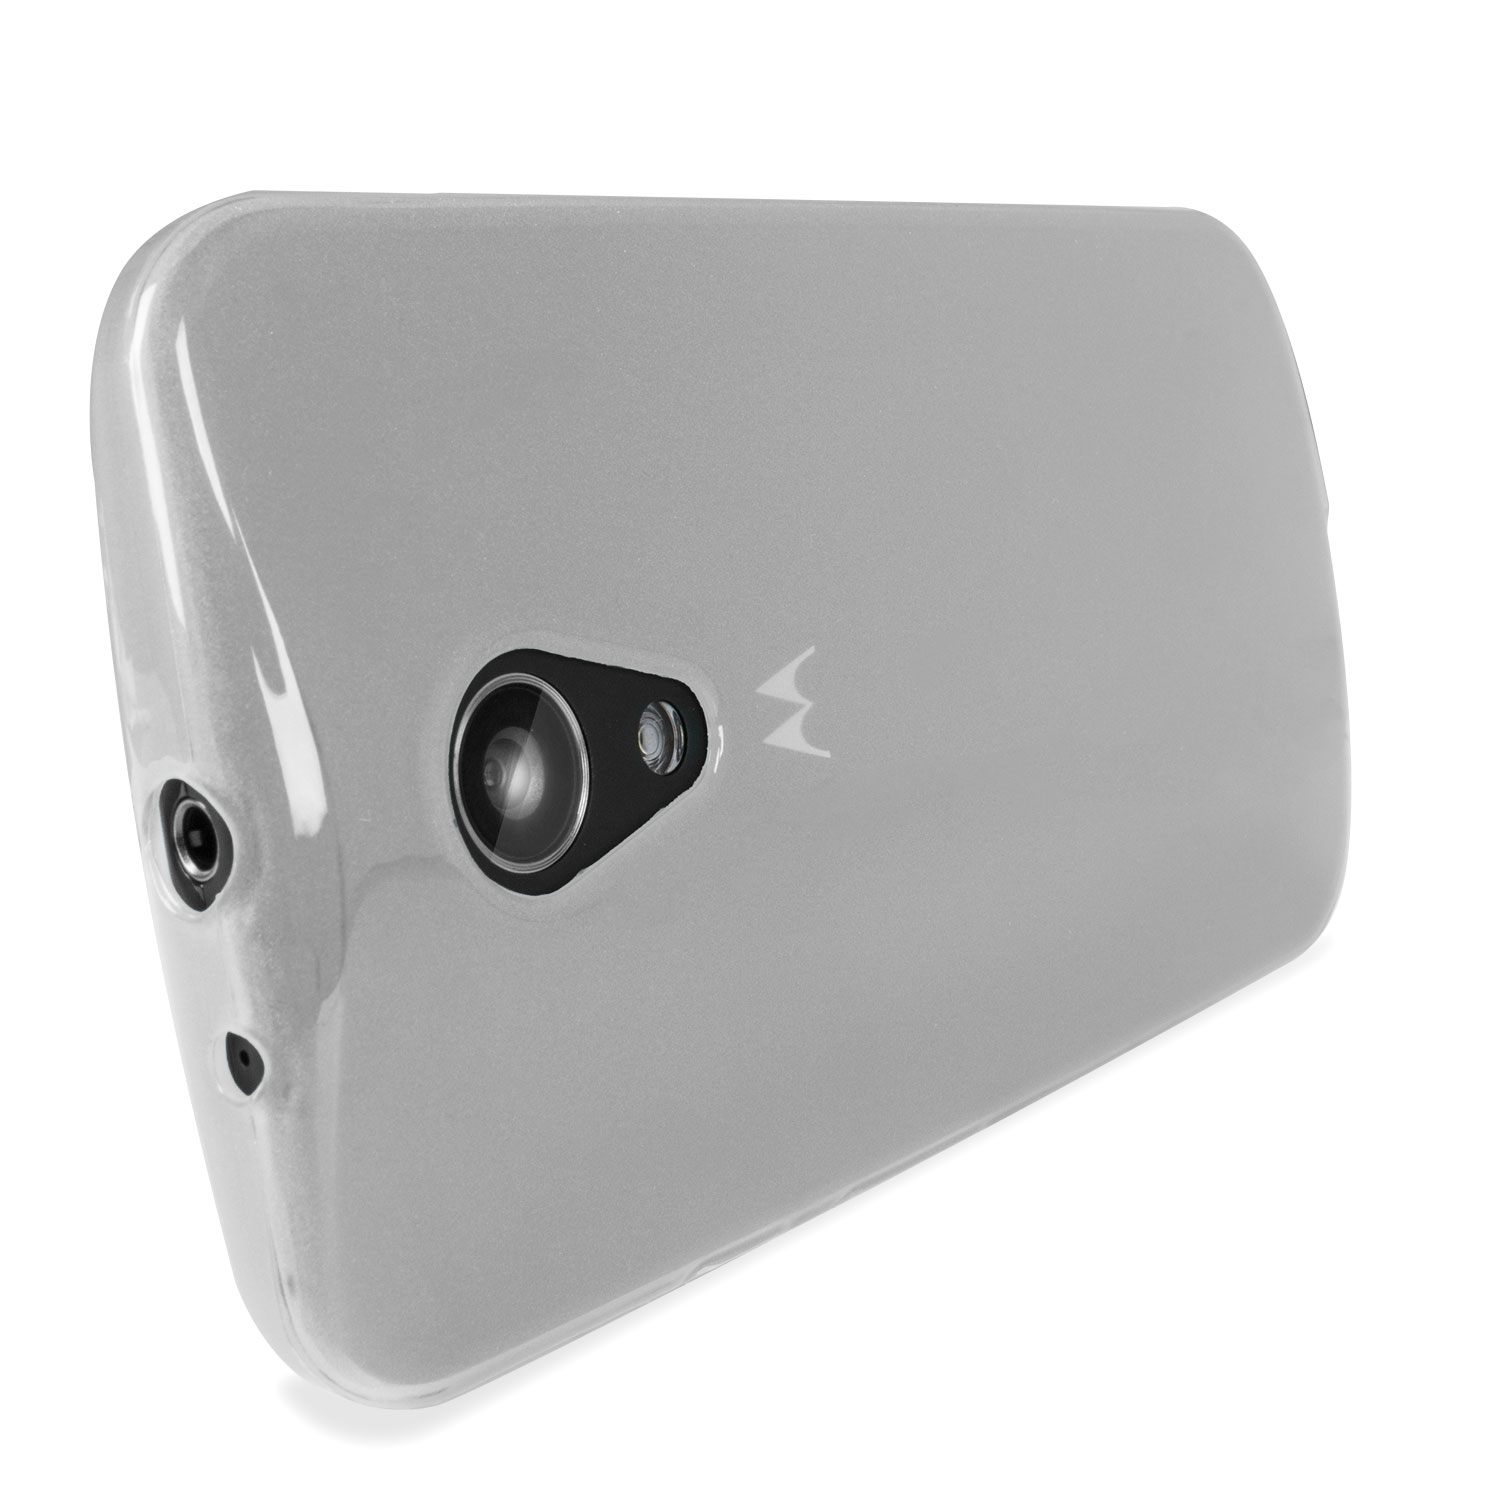 Flexishield Moto G 2nd Gen Case - Frost White